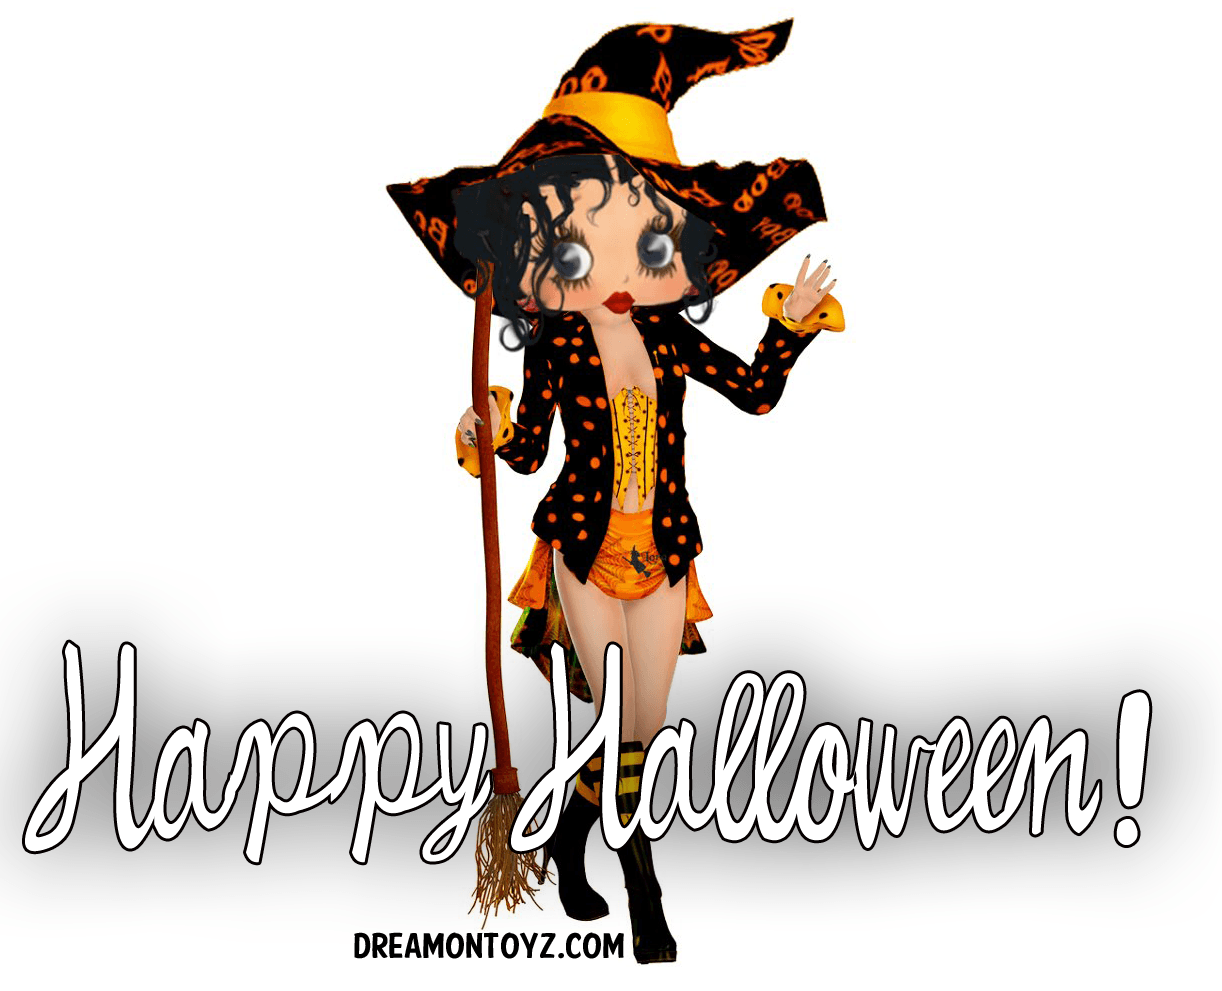 betty boop halloween wallpapers - wallpaper cave